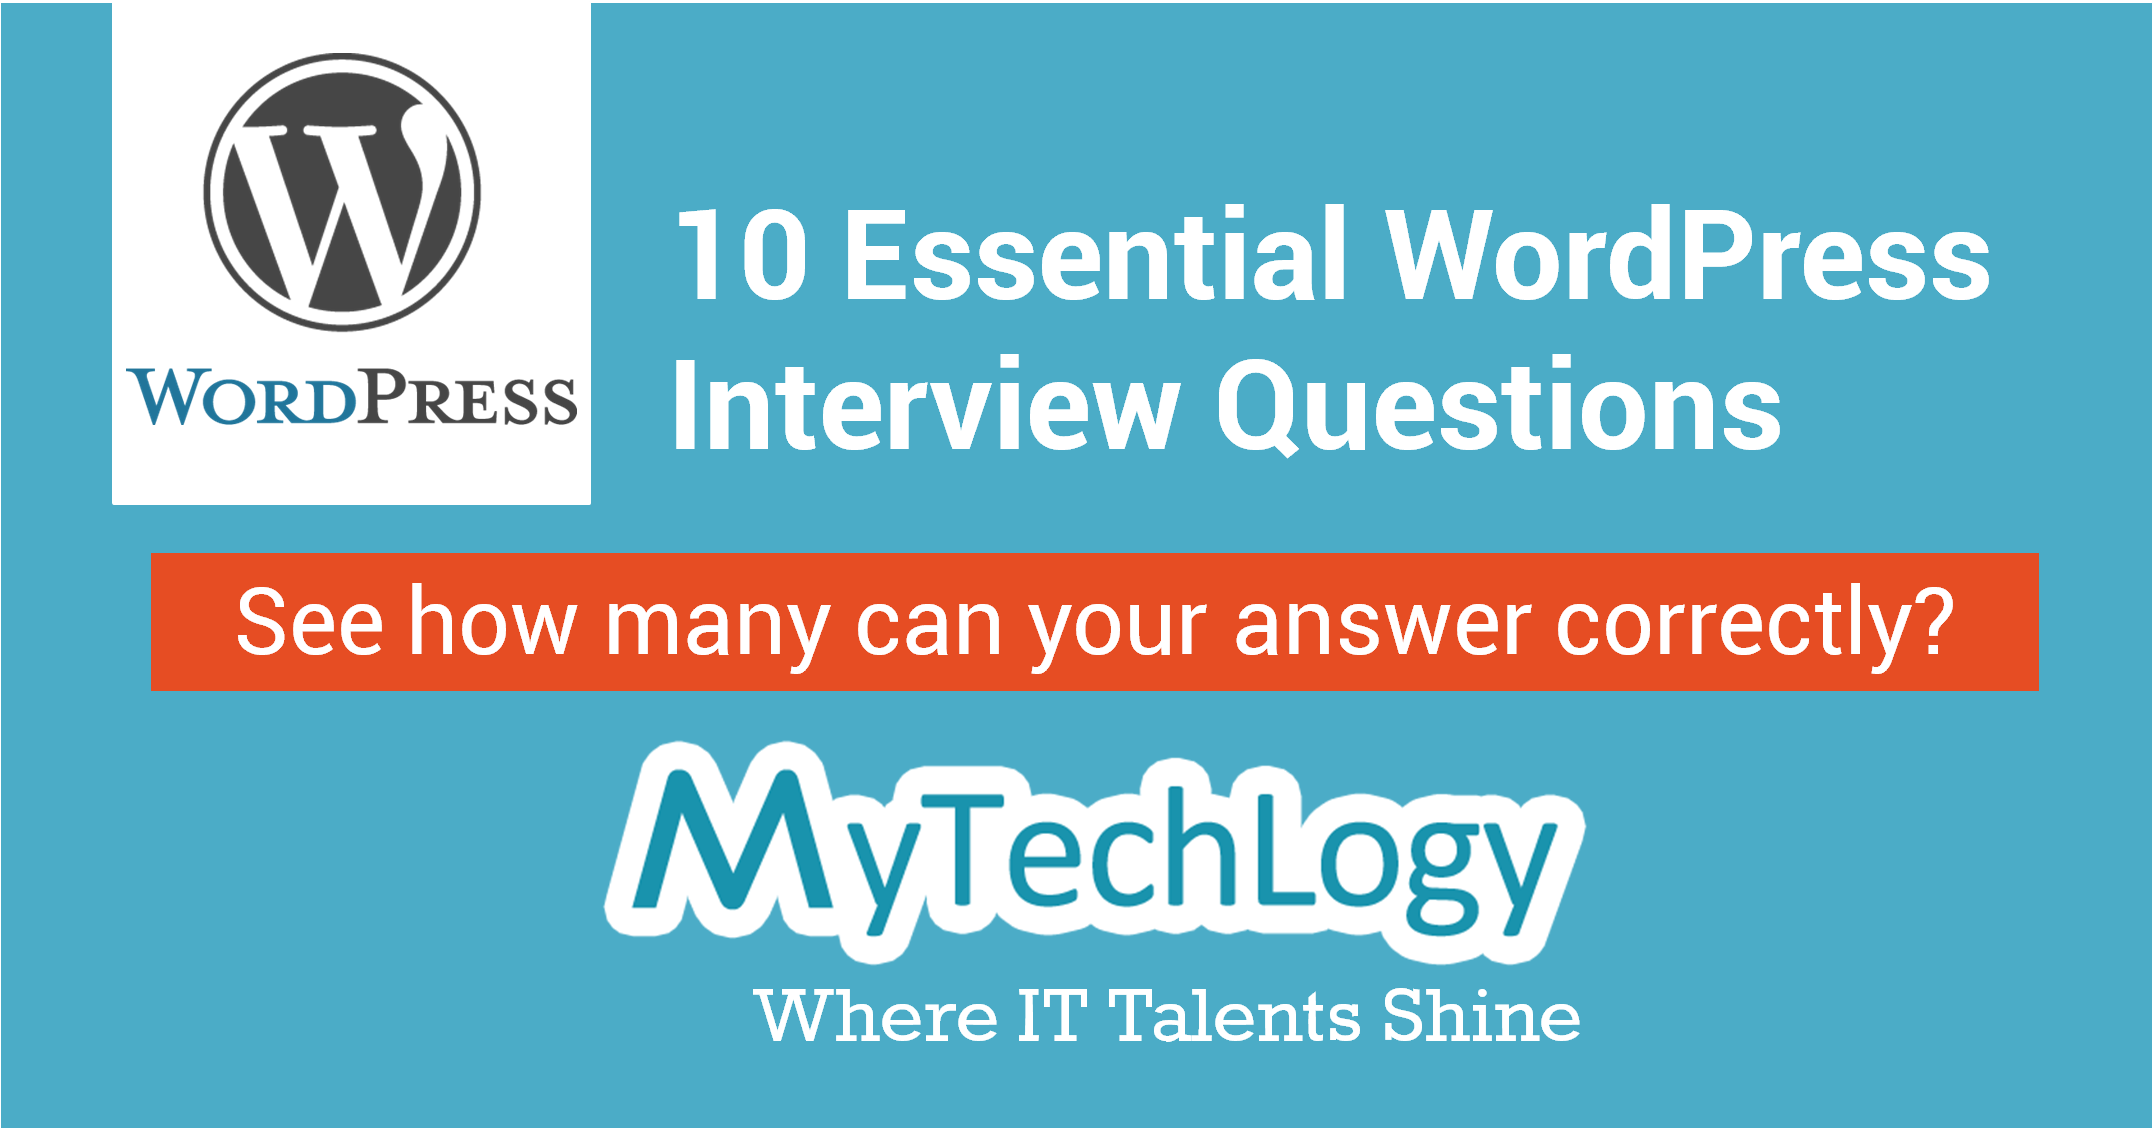 10 Essential WordPress Interview Questions - Image 4